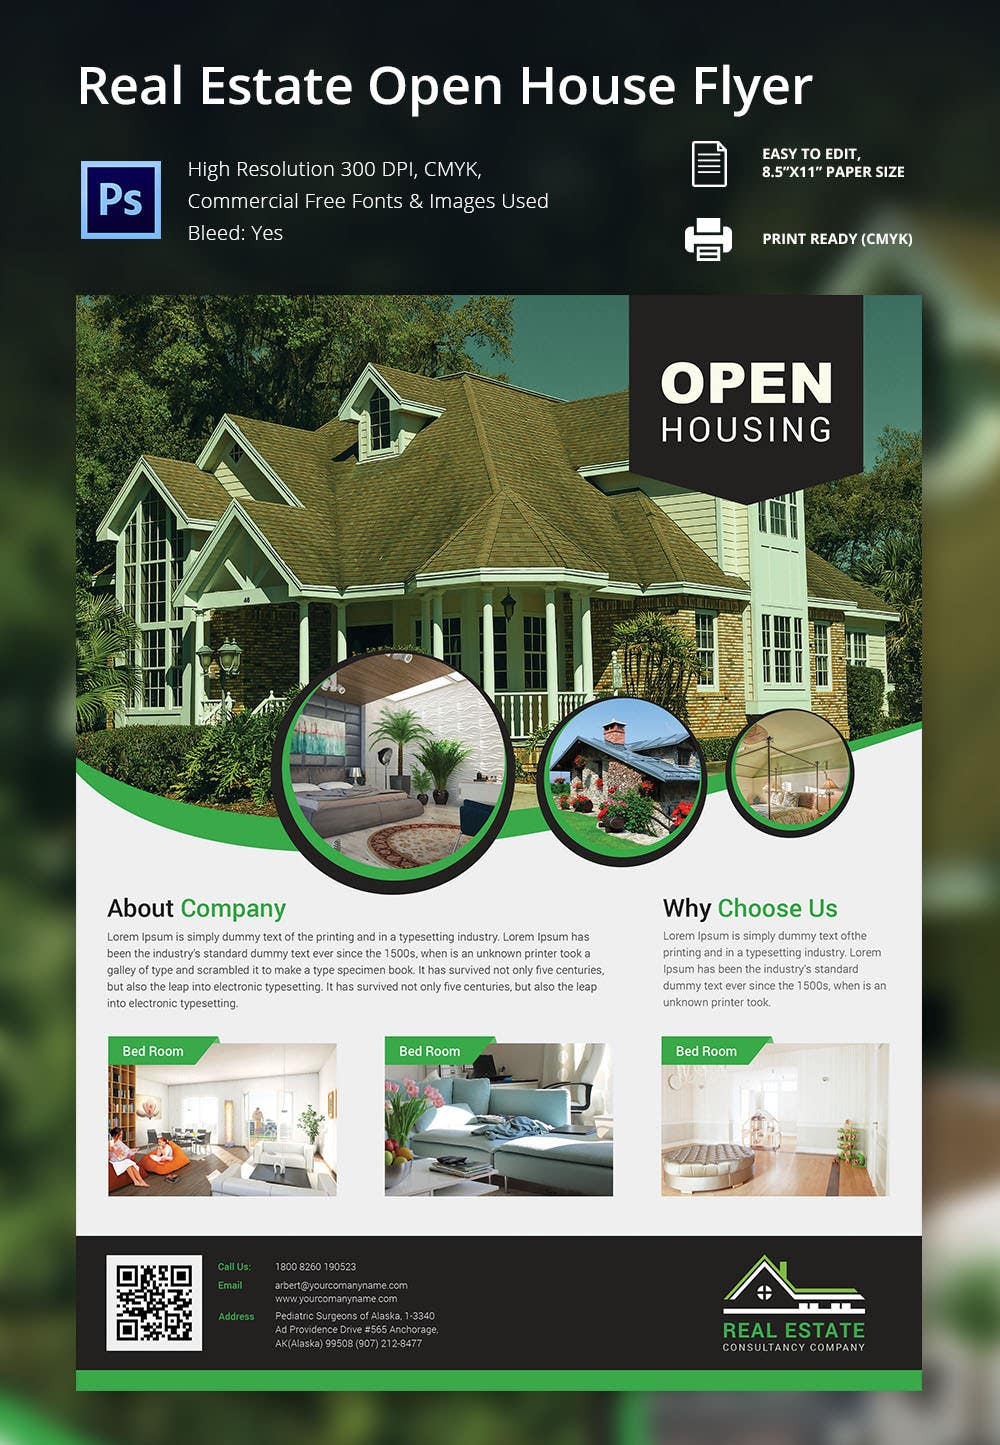 open house flyer template 30 psd format real estate open house flyer template